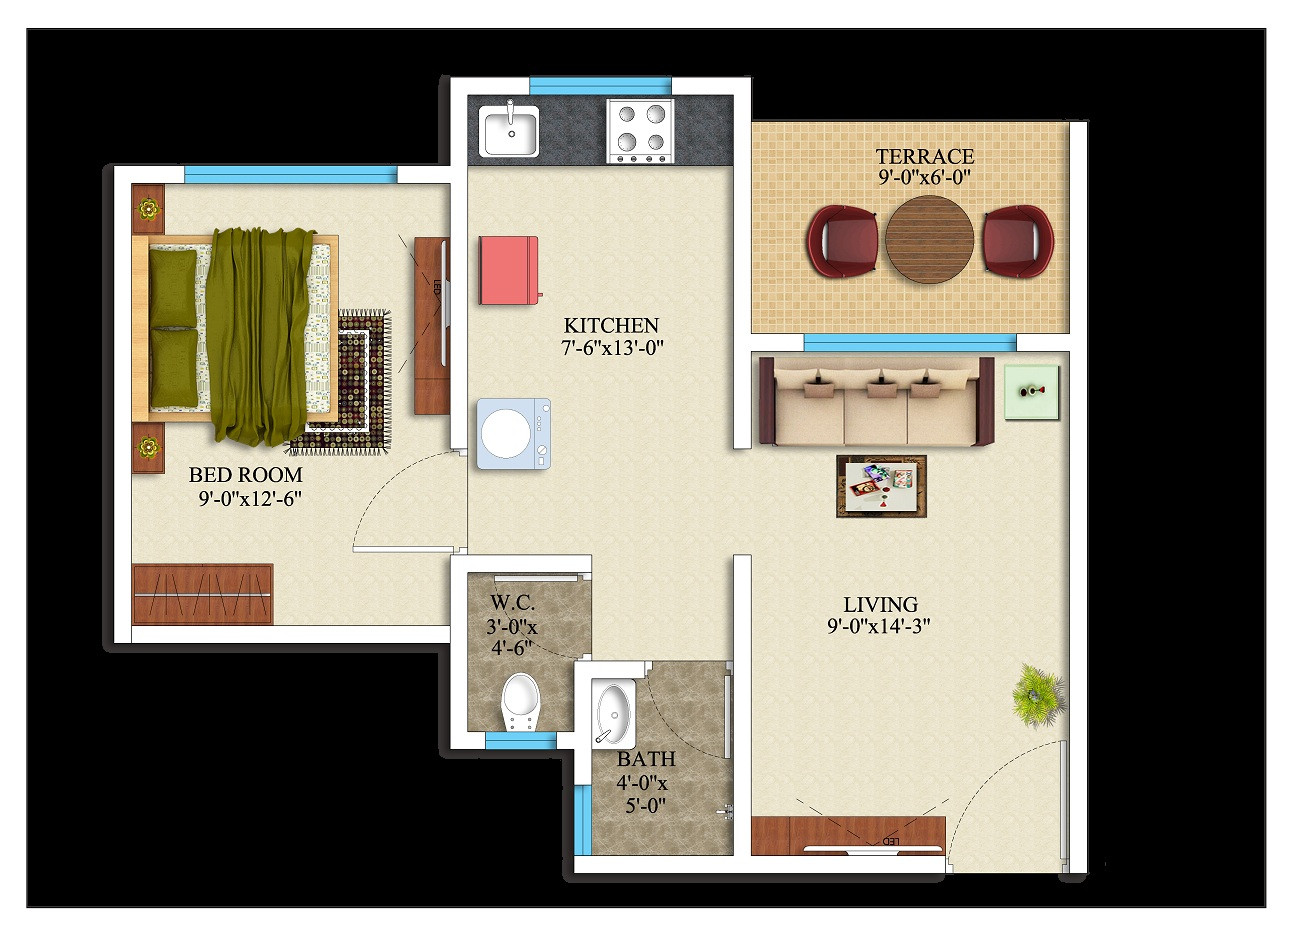 1BHK- 395 square feet